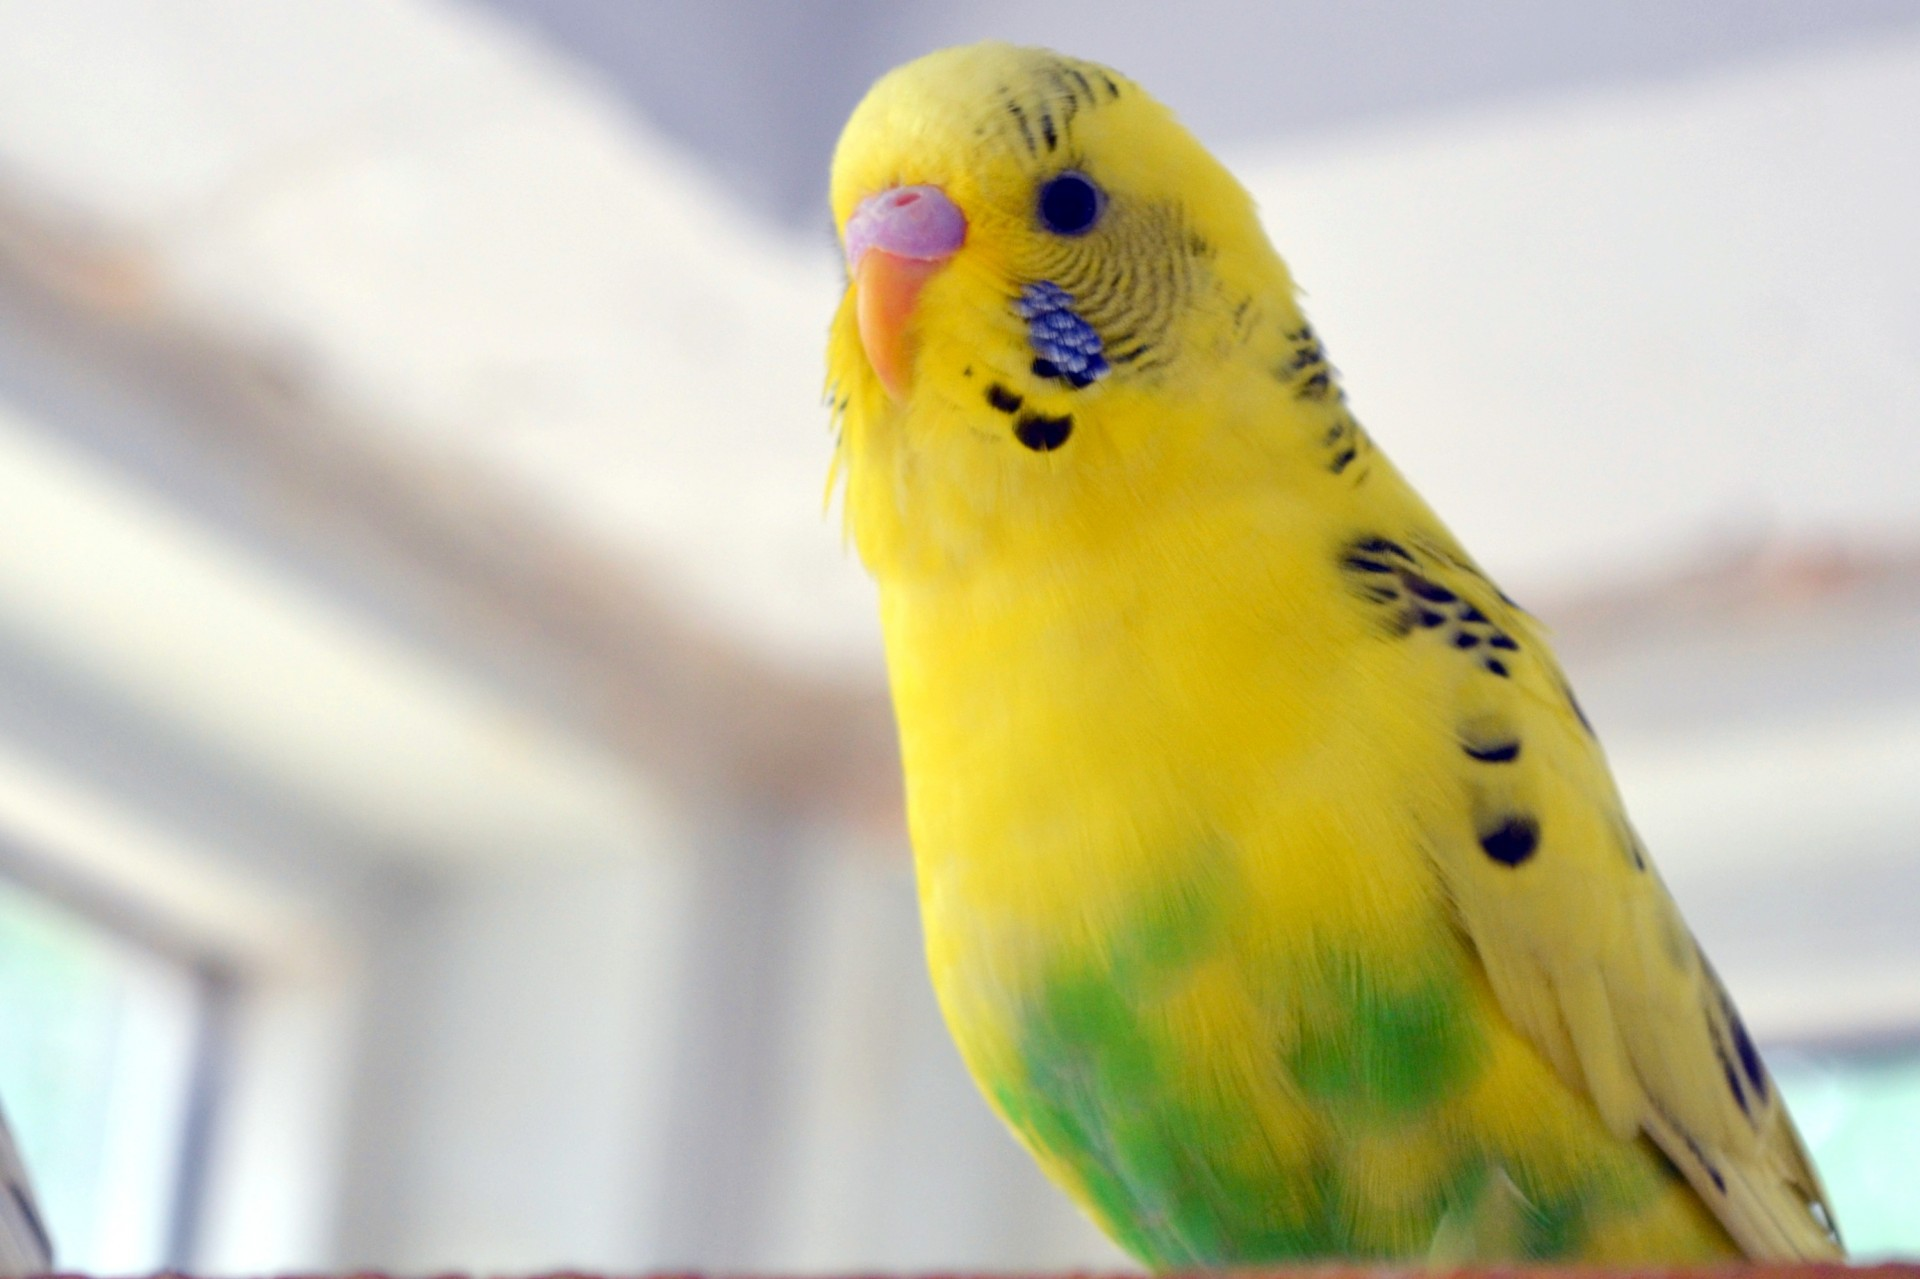 Budgie Widescreen